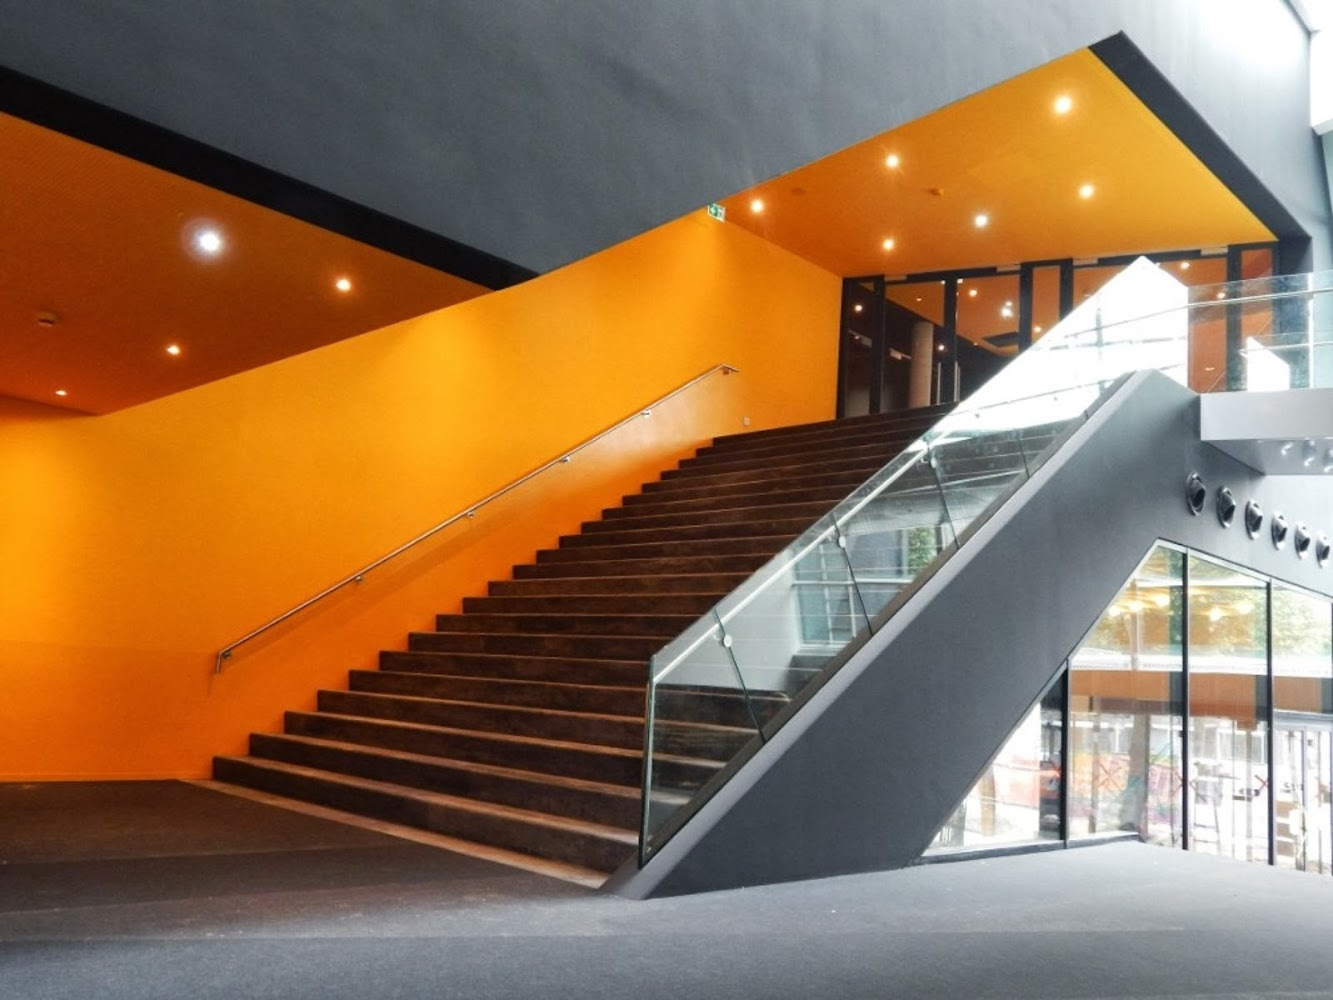 Multipurpose Hall Markant by architectuurstudio Hh